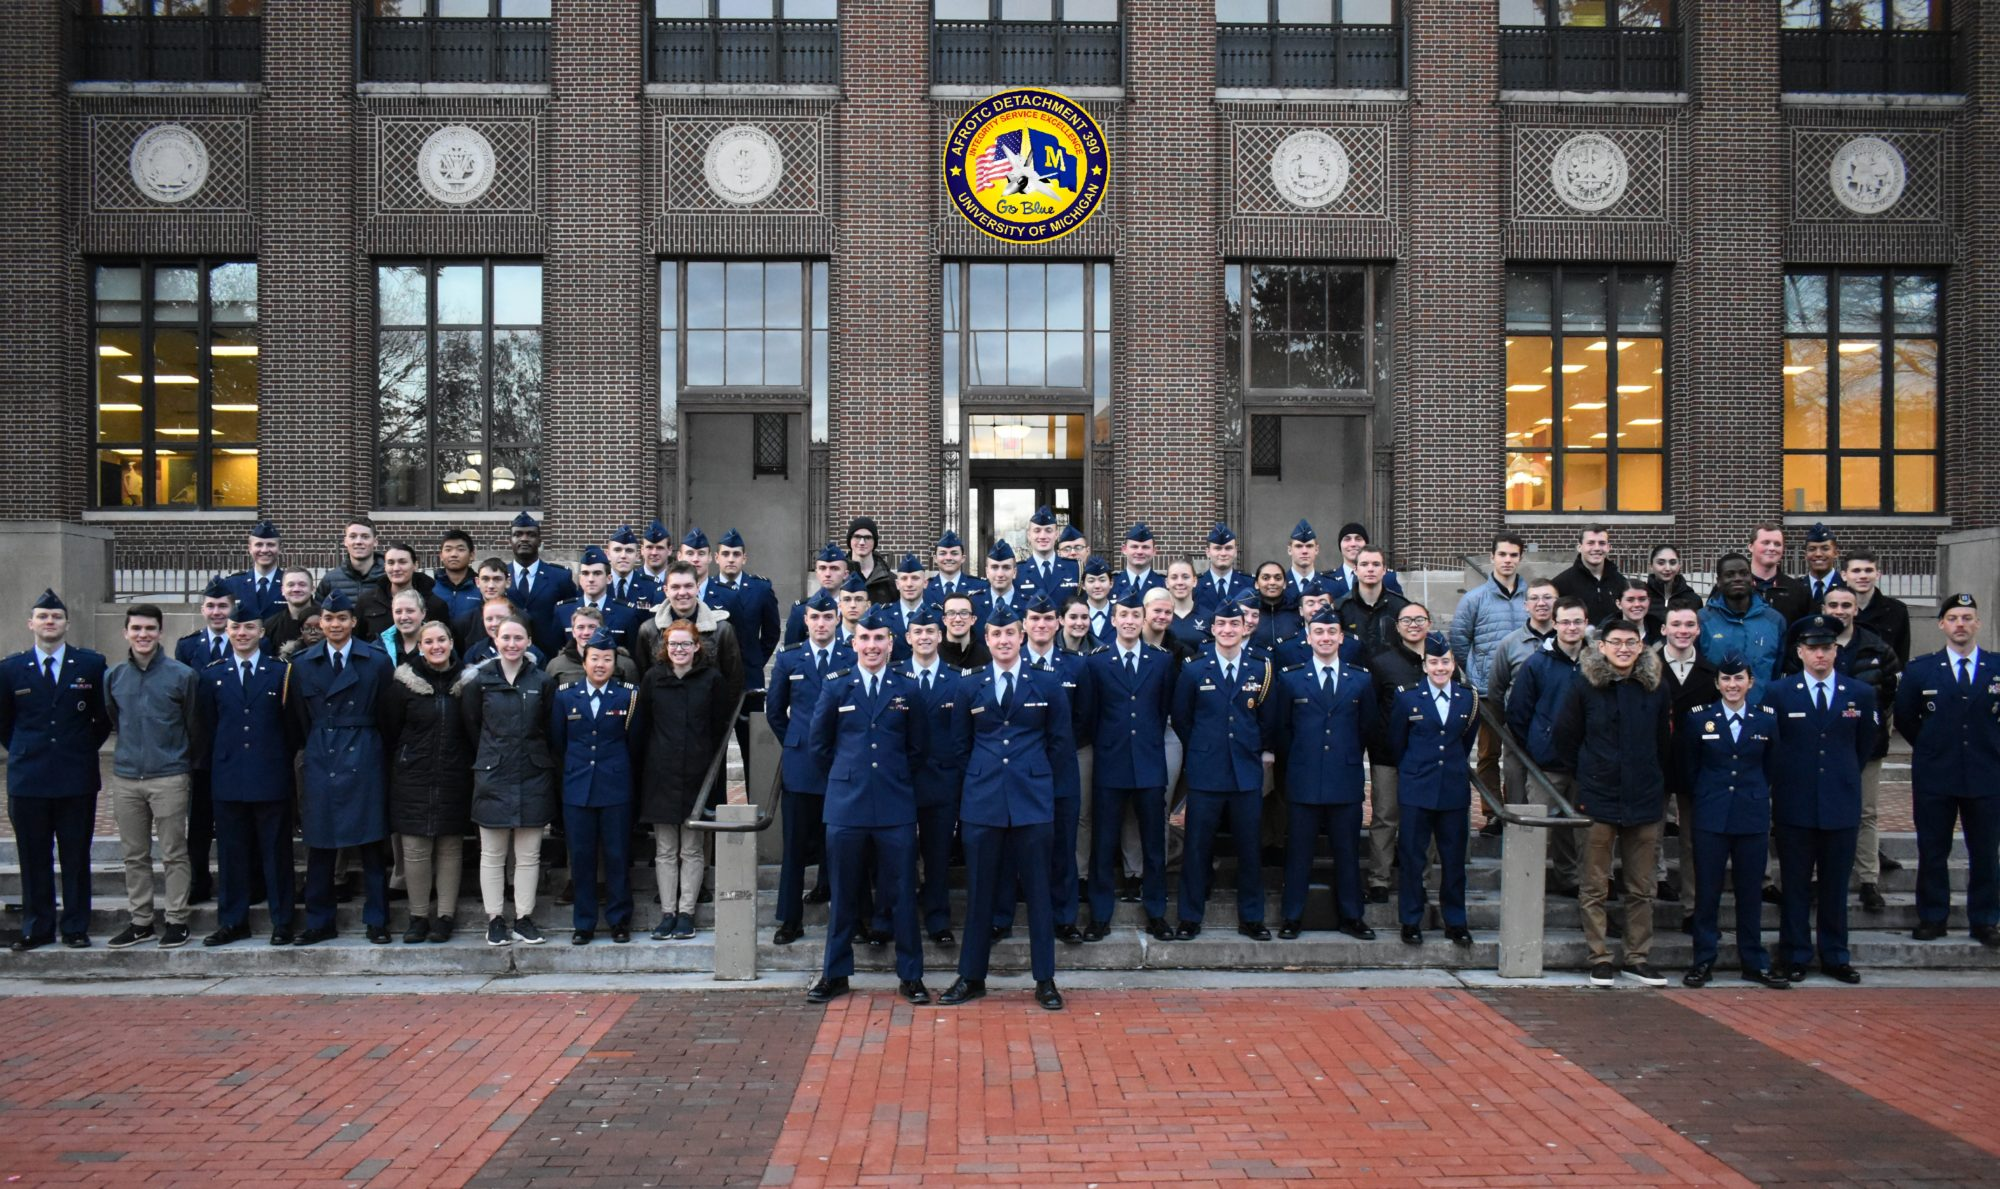 Air Force ROTC Detachment 390